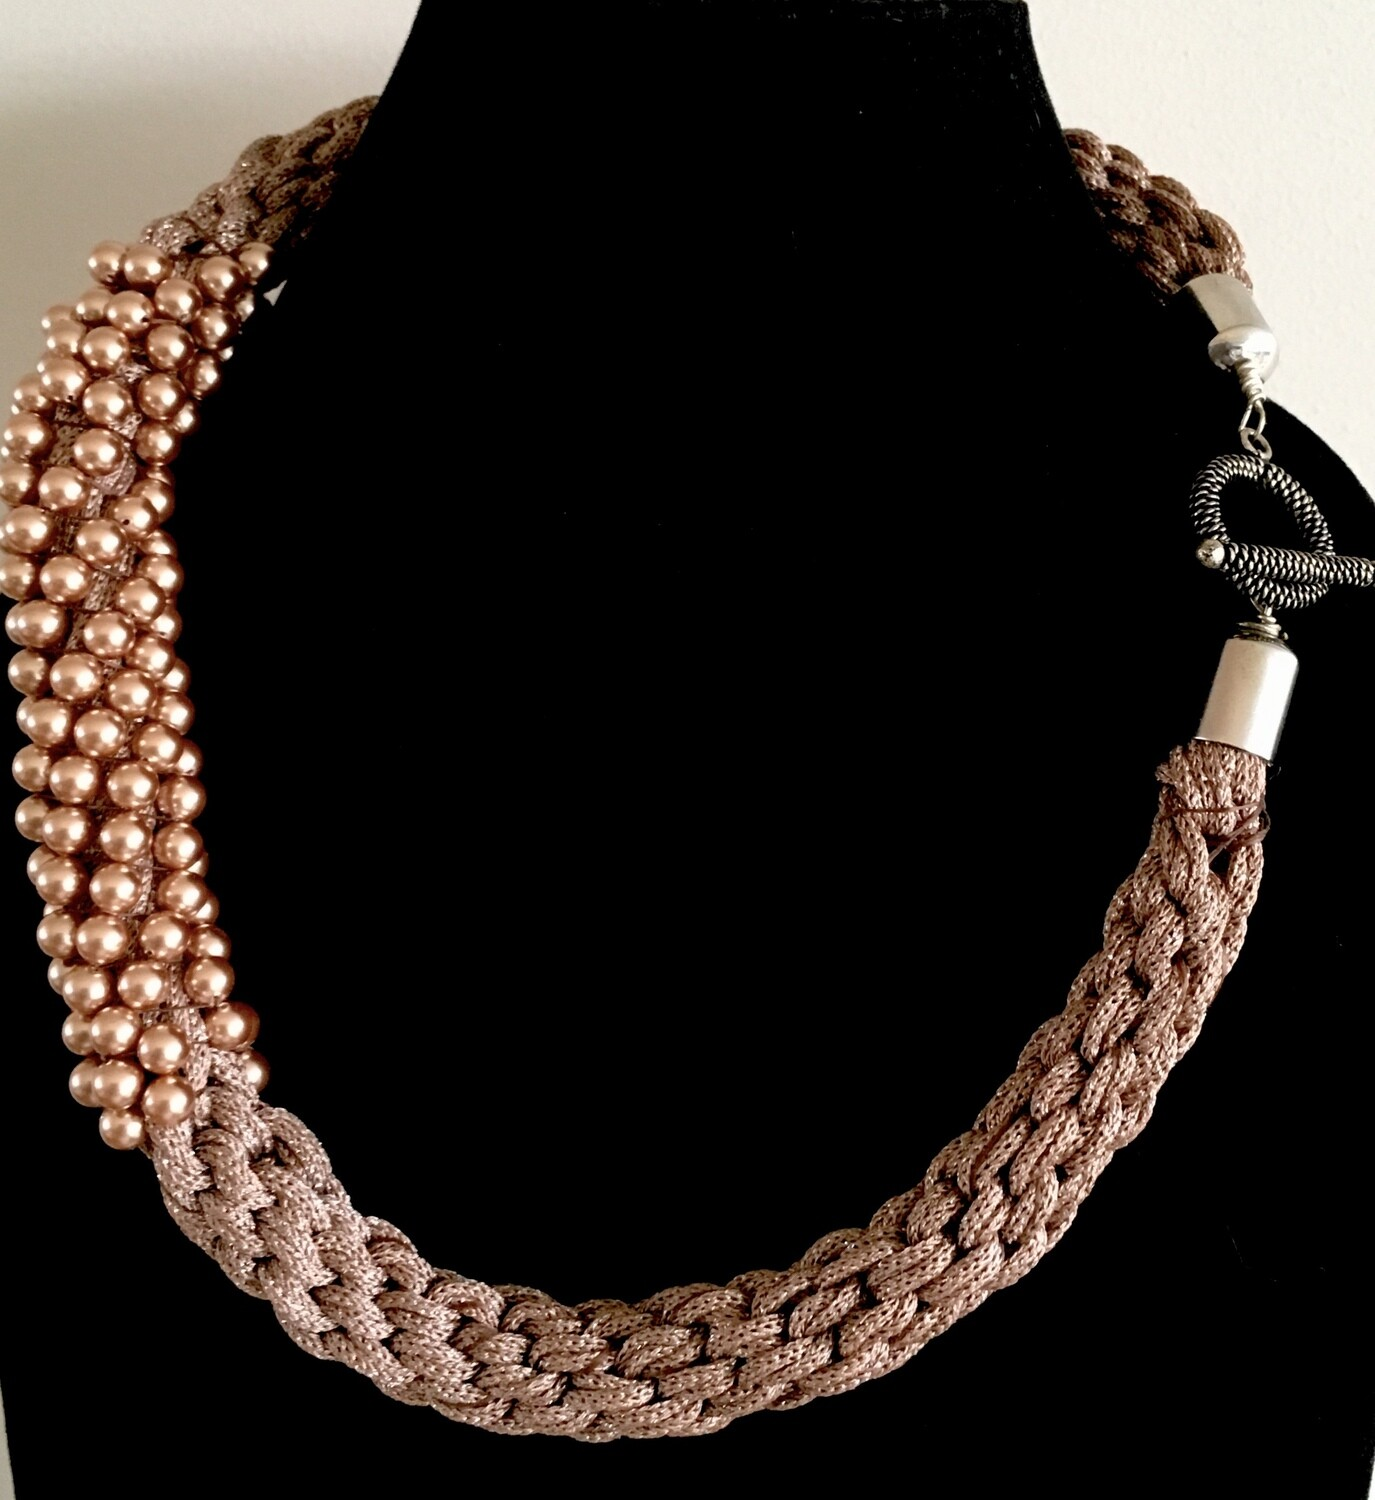 Woven silk cord and bead necklace